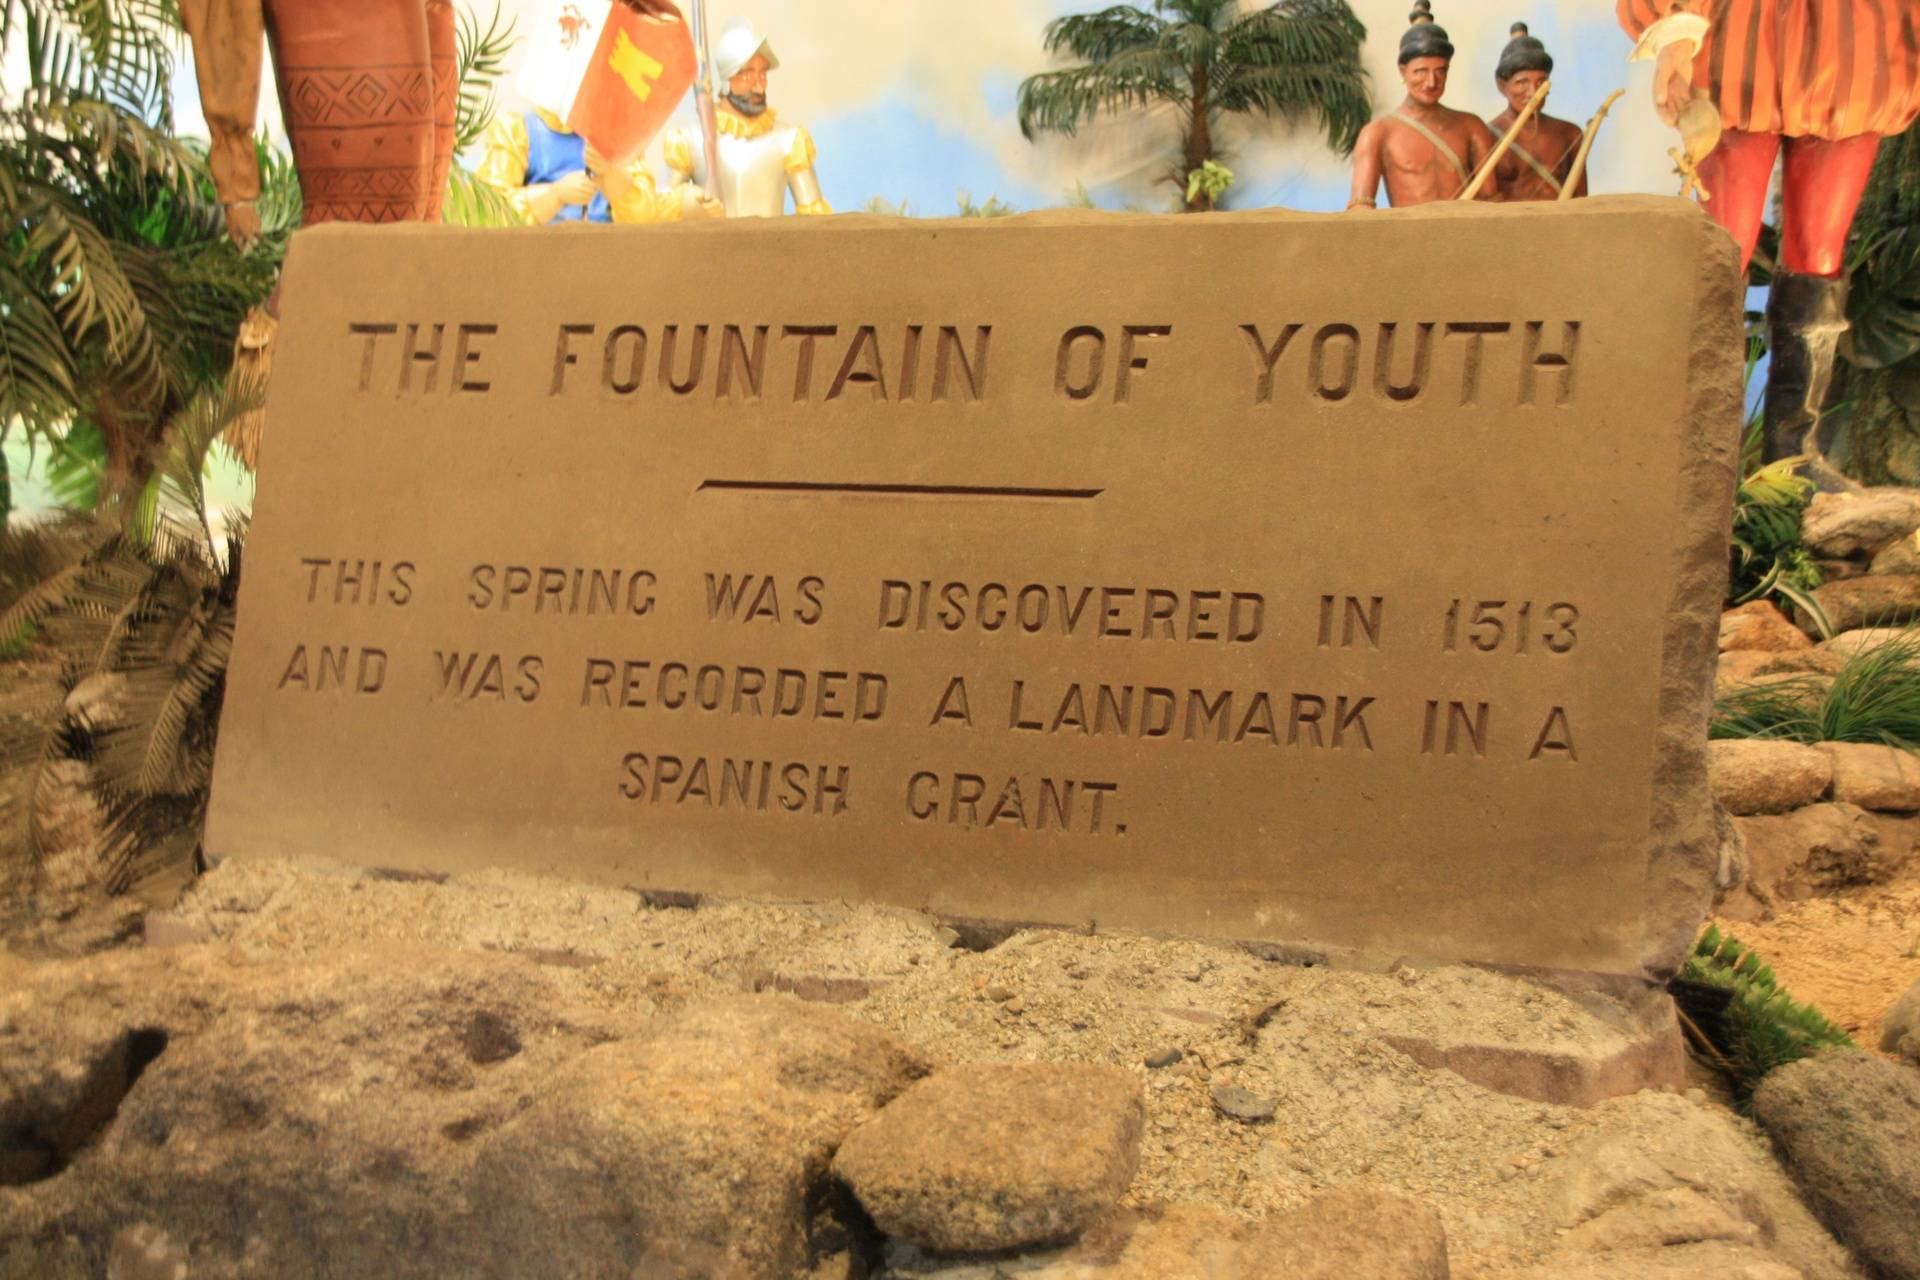 Fountain of Youth, St. Augustine FL